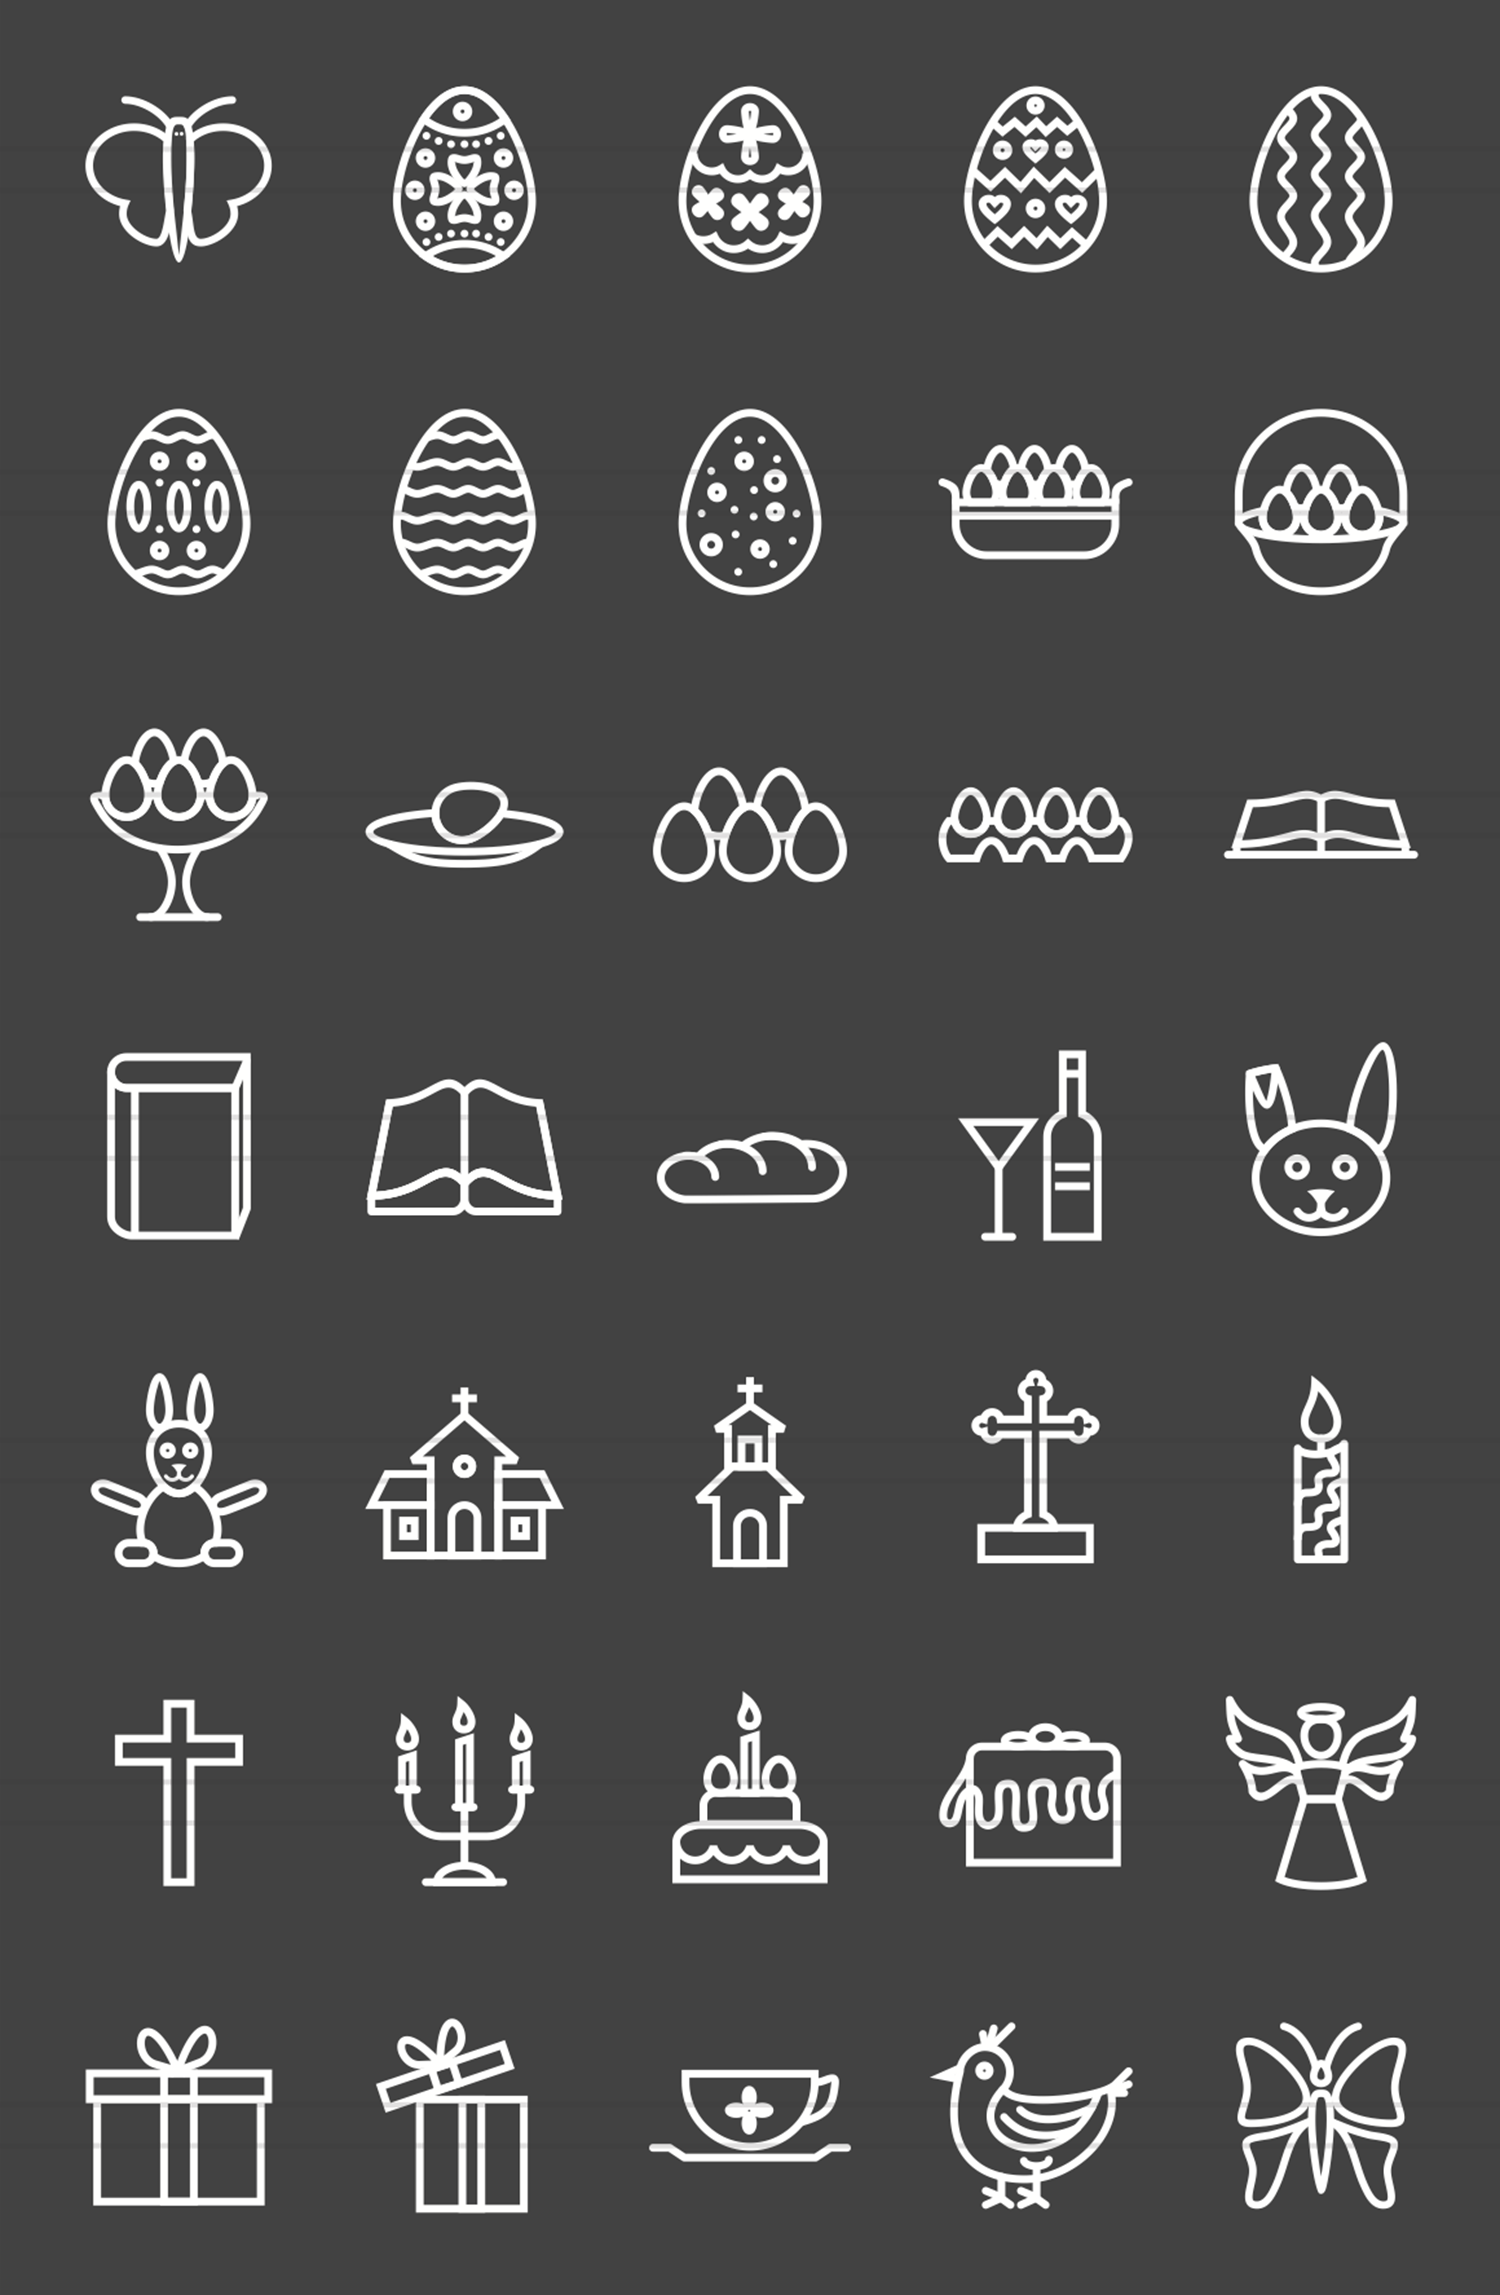 35 Easter Line Inverted Icons example image 2